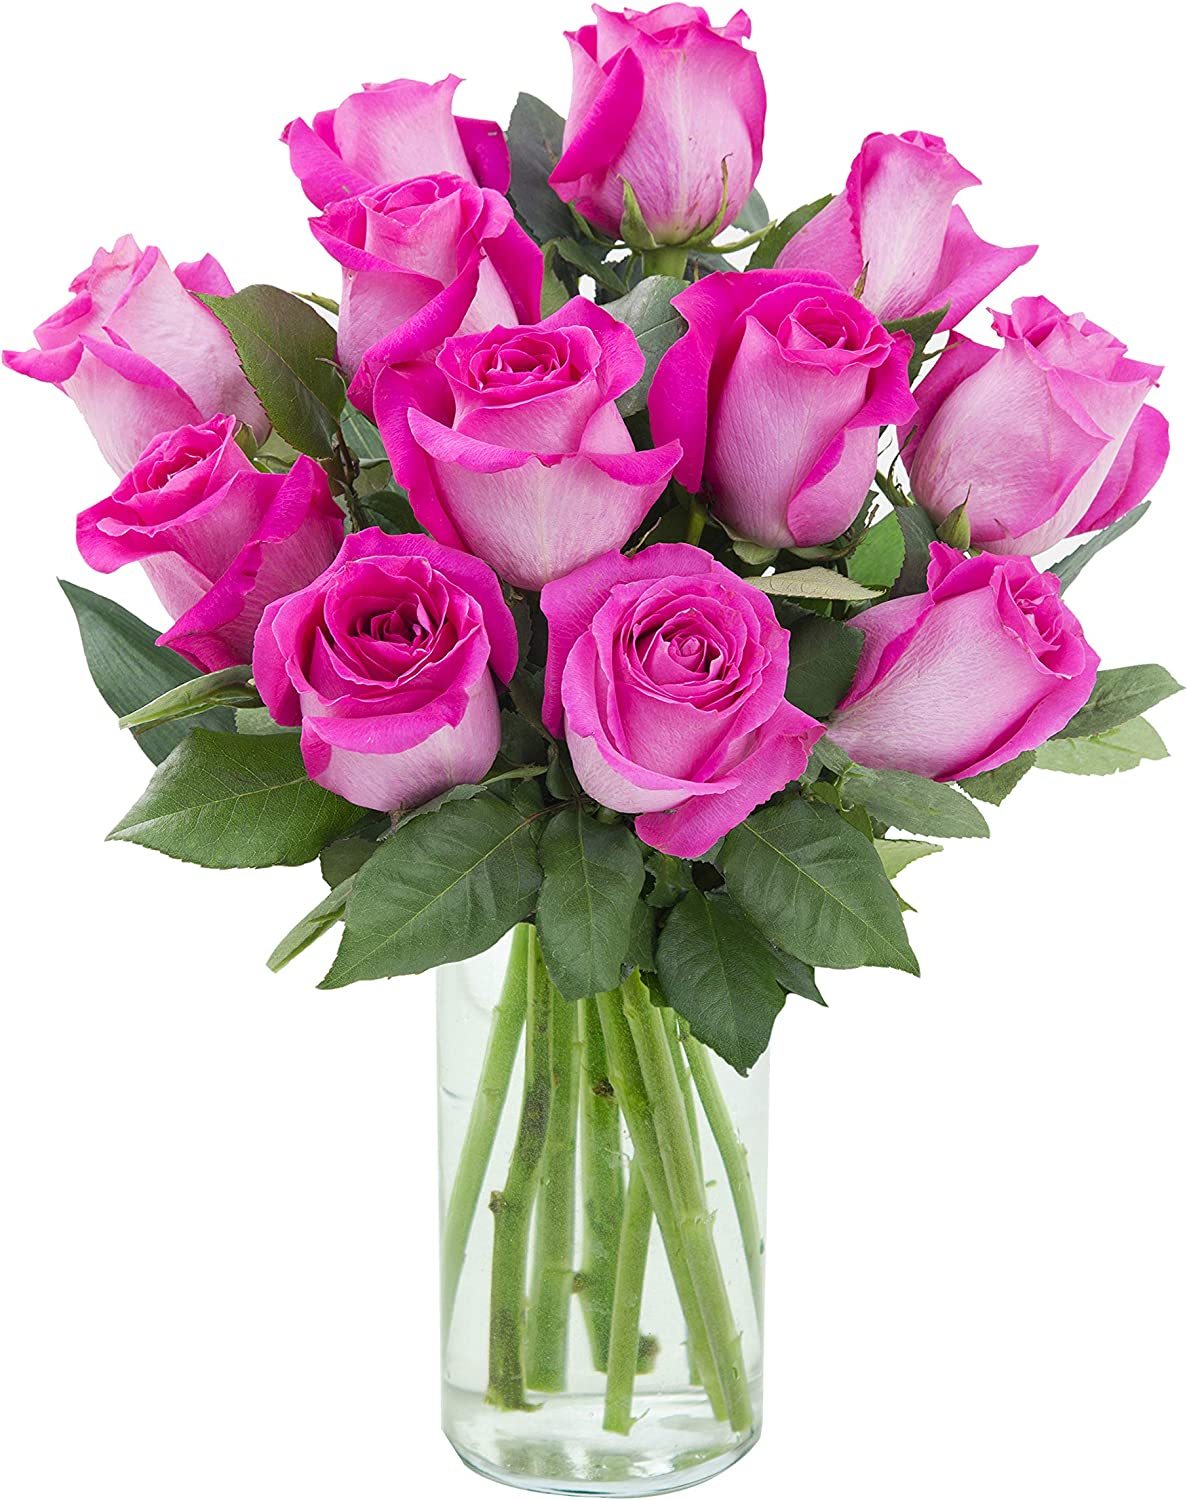 Purchase Now for Delivery by Thursday | Arabella Farm Direct Bouquet of 12 Stems of Fresh Cut Hot Pink Roses in a Free Designer Glass Vase